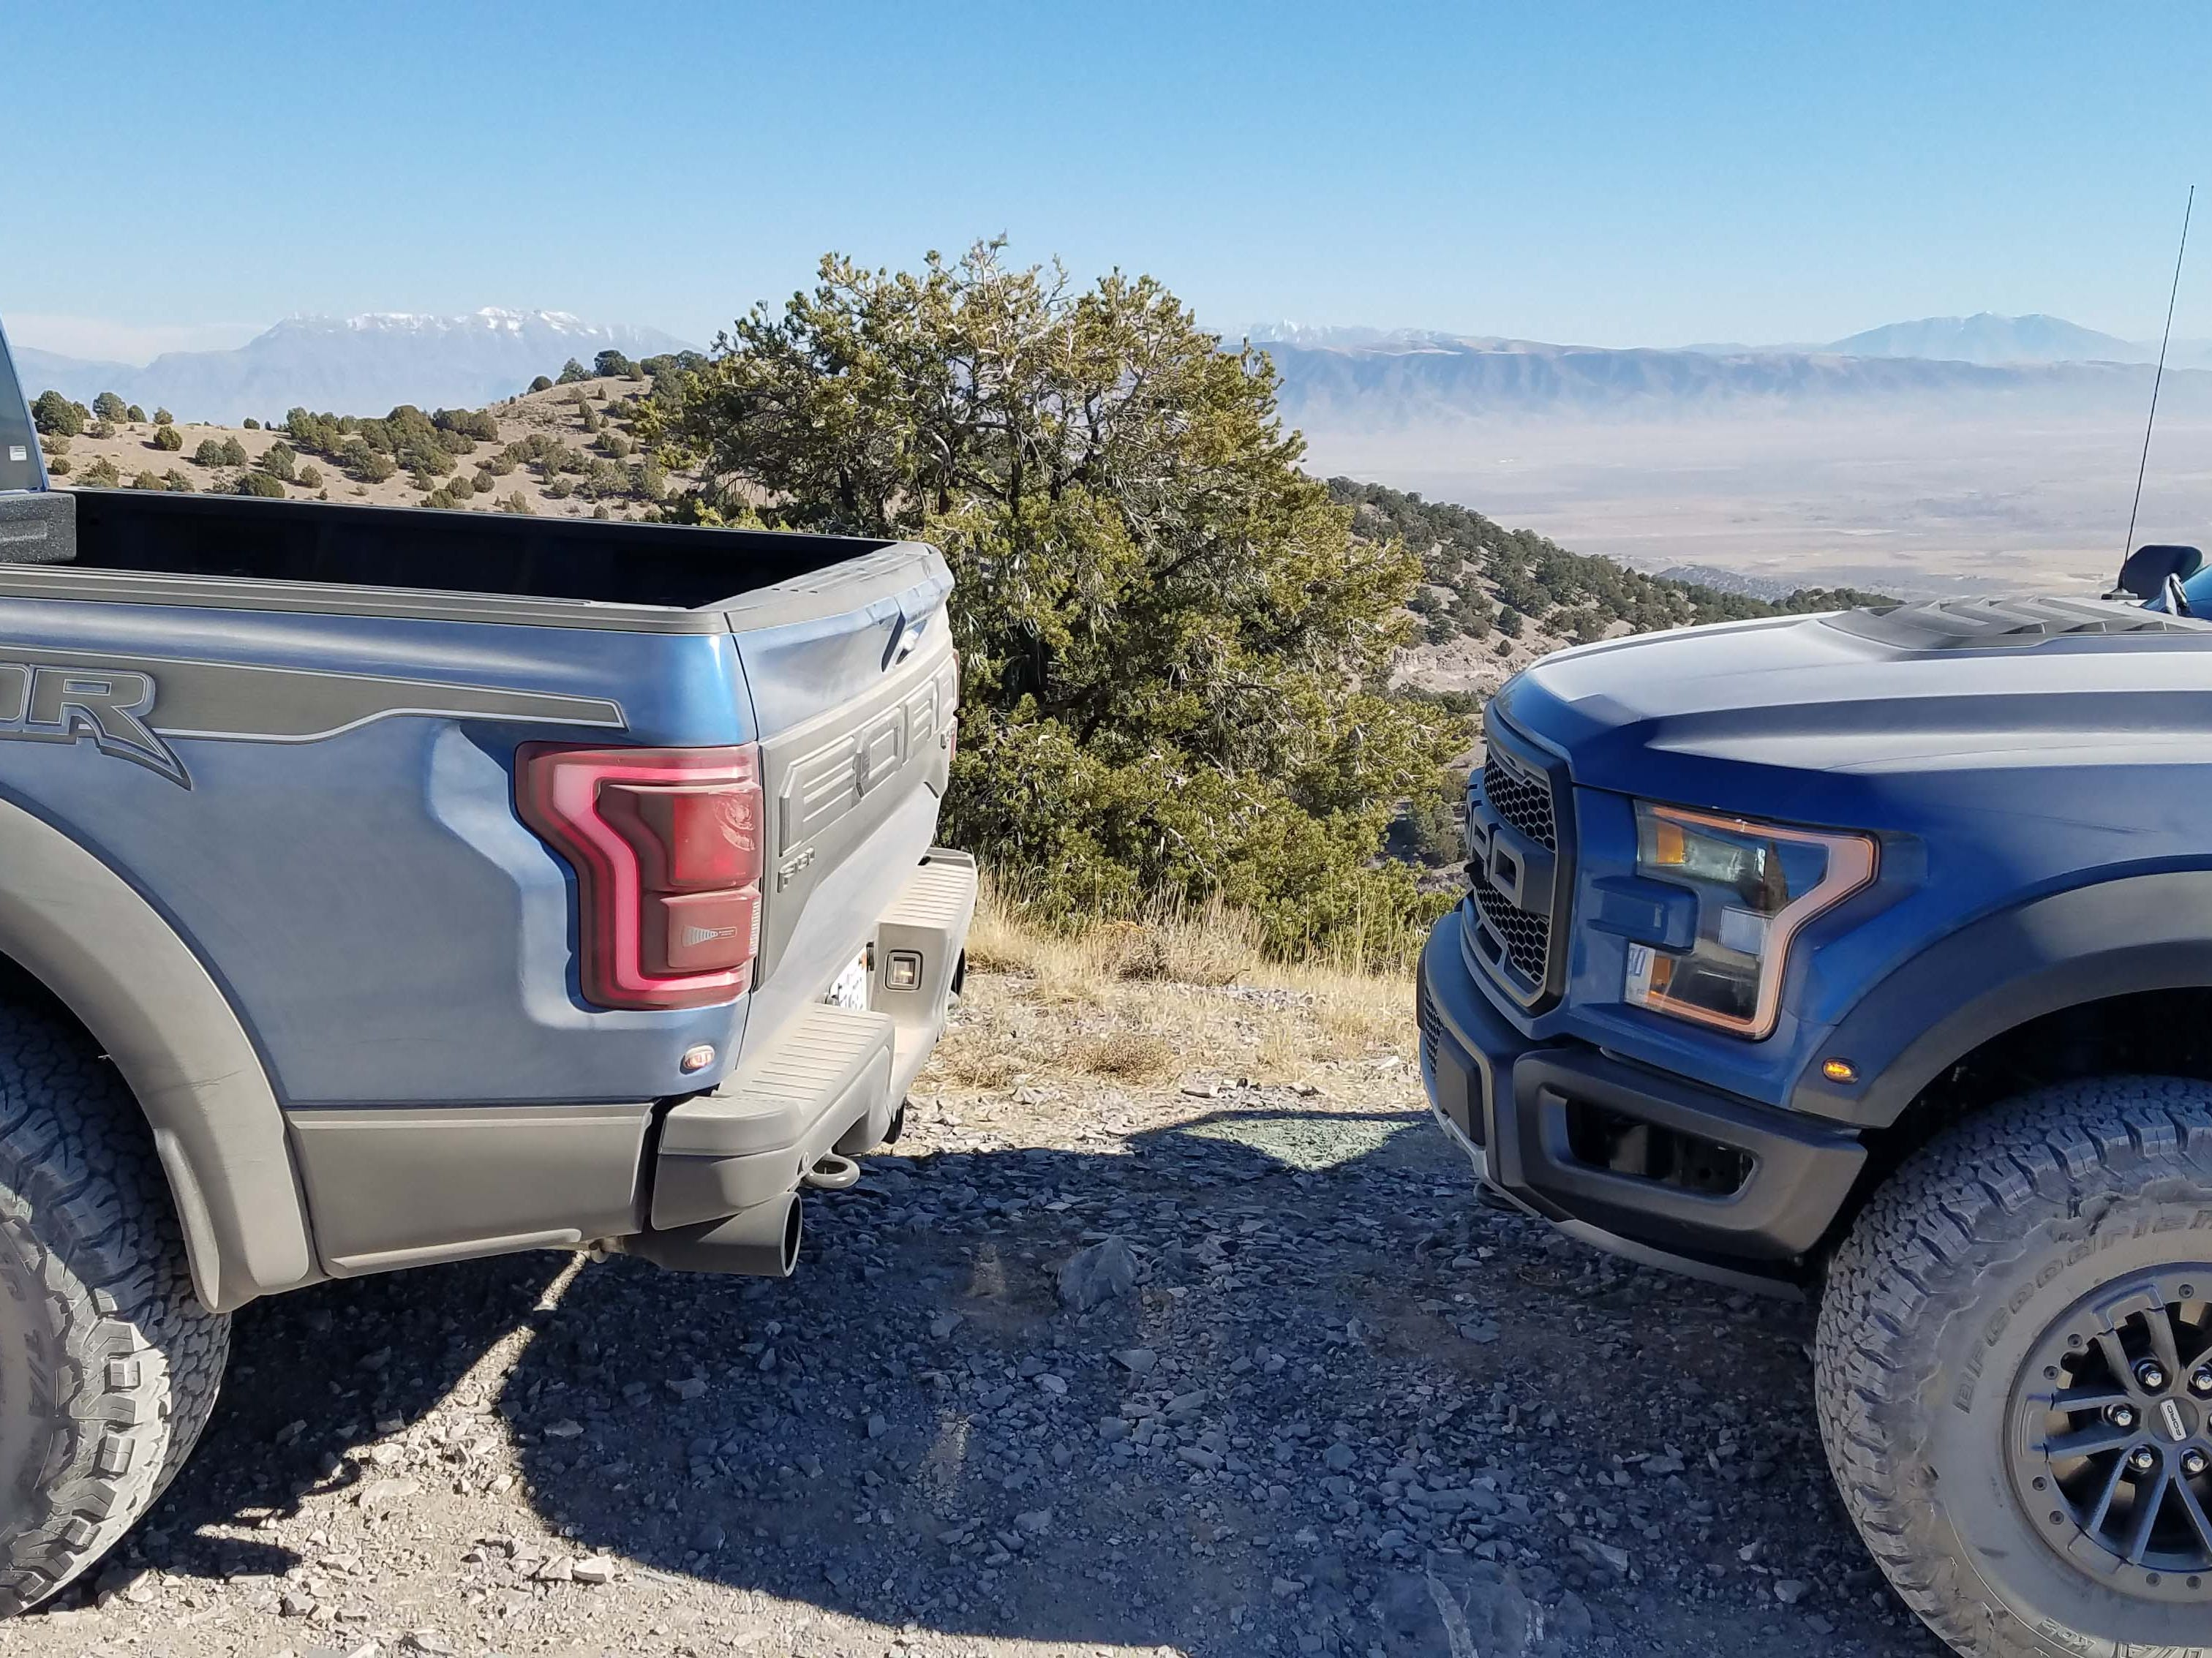 The front and rear fascias of the 2019 Ford F-150 Raptor are little changed from the second-gen model that debuted for the 2017 model year. The most important upgrades are in suspension, electronics and seating.